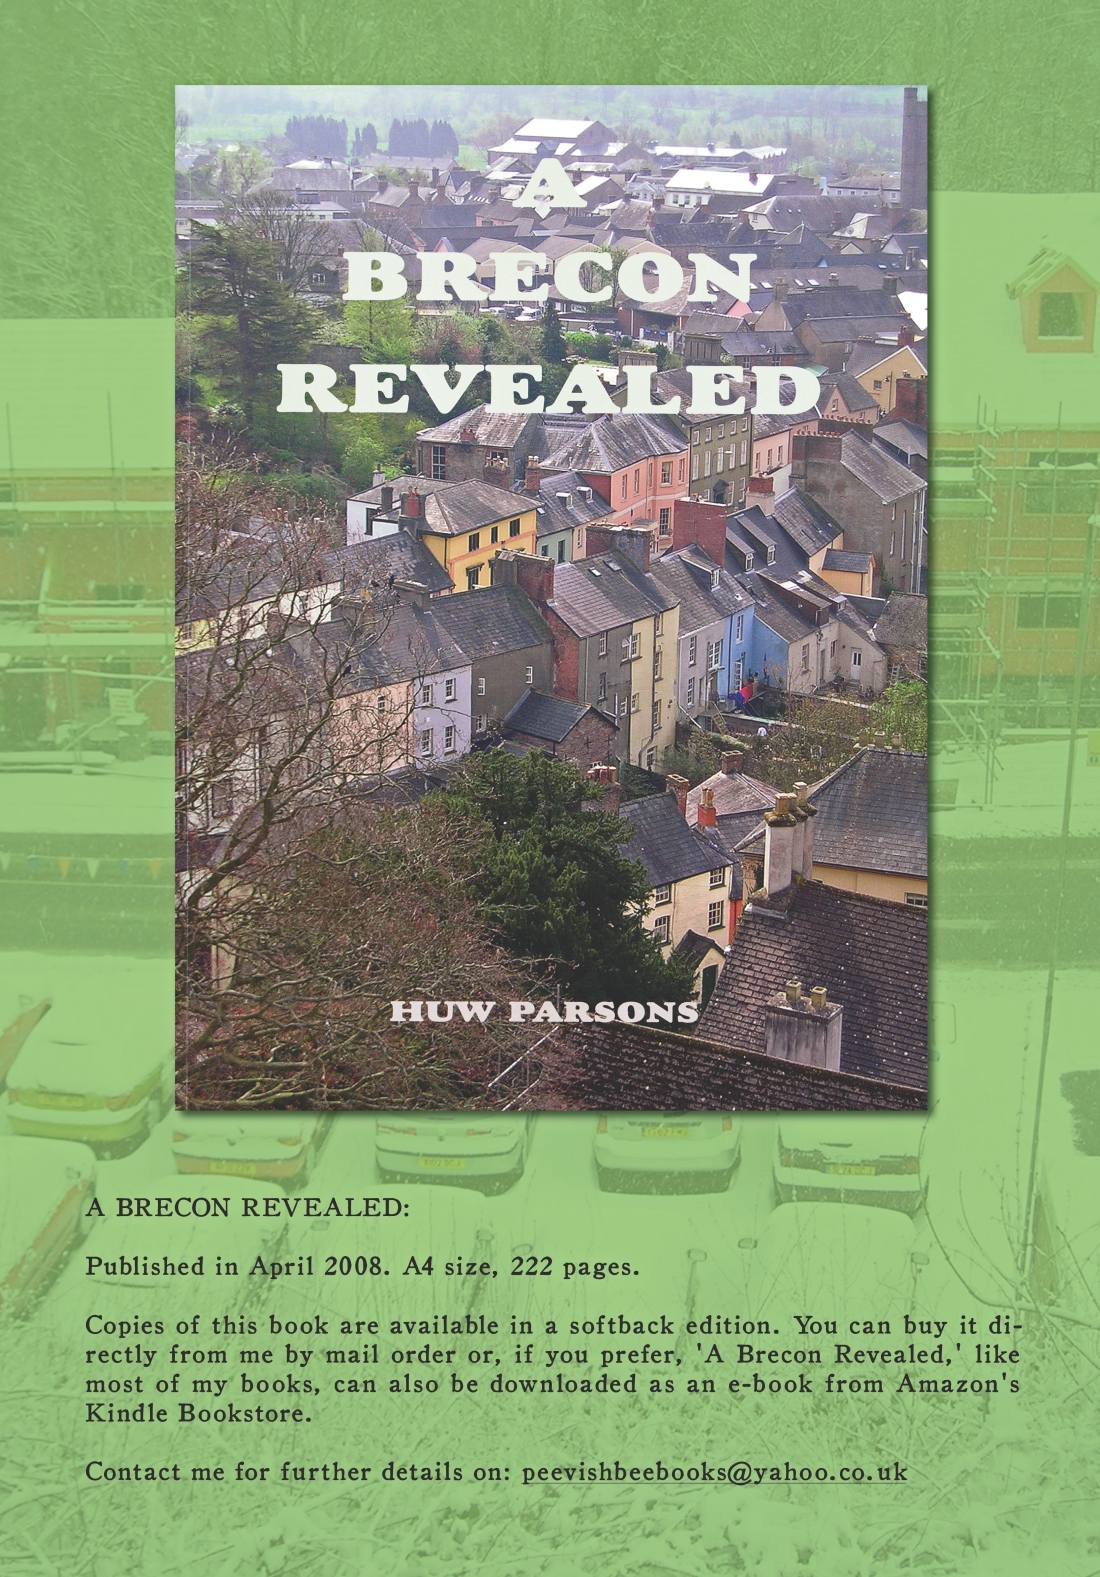 A Brecon Revealed Book Advert copy